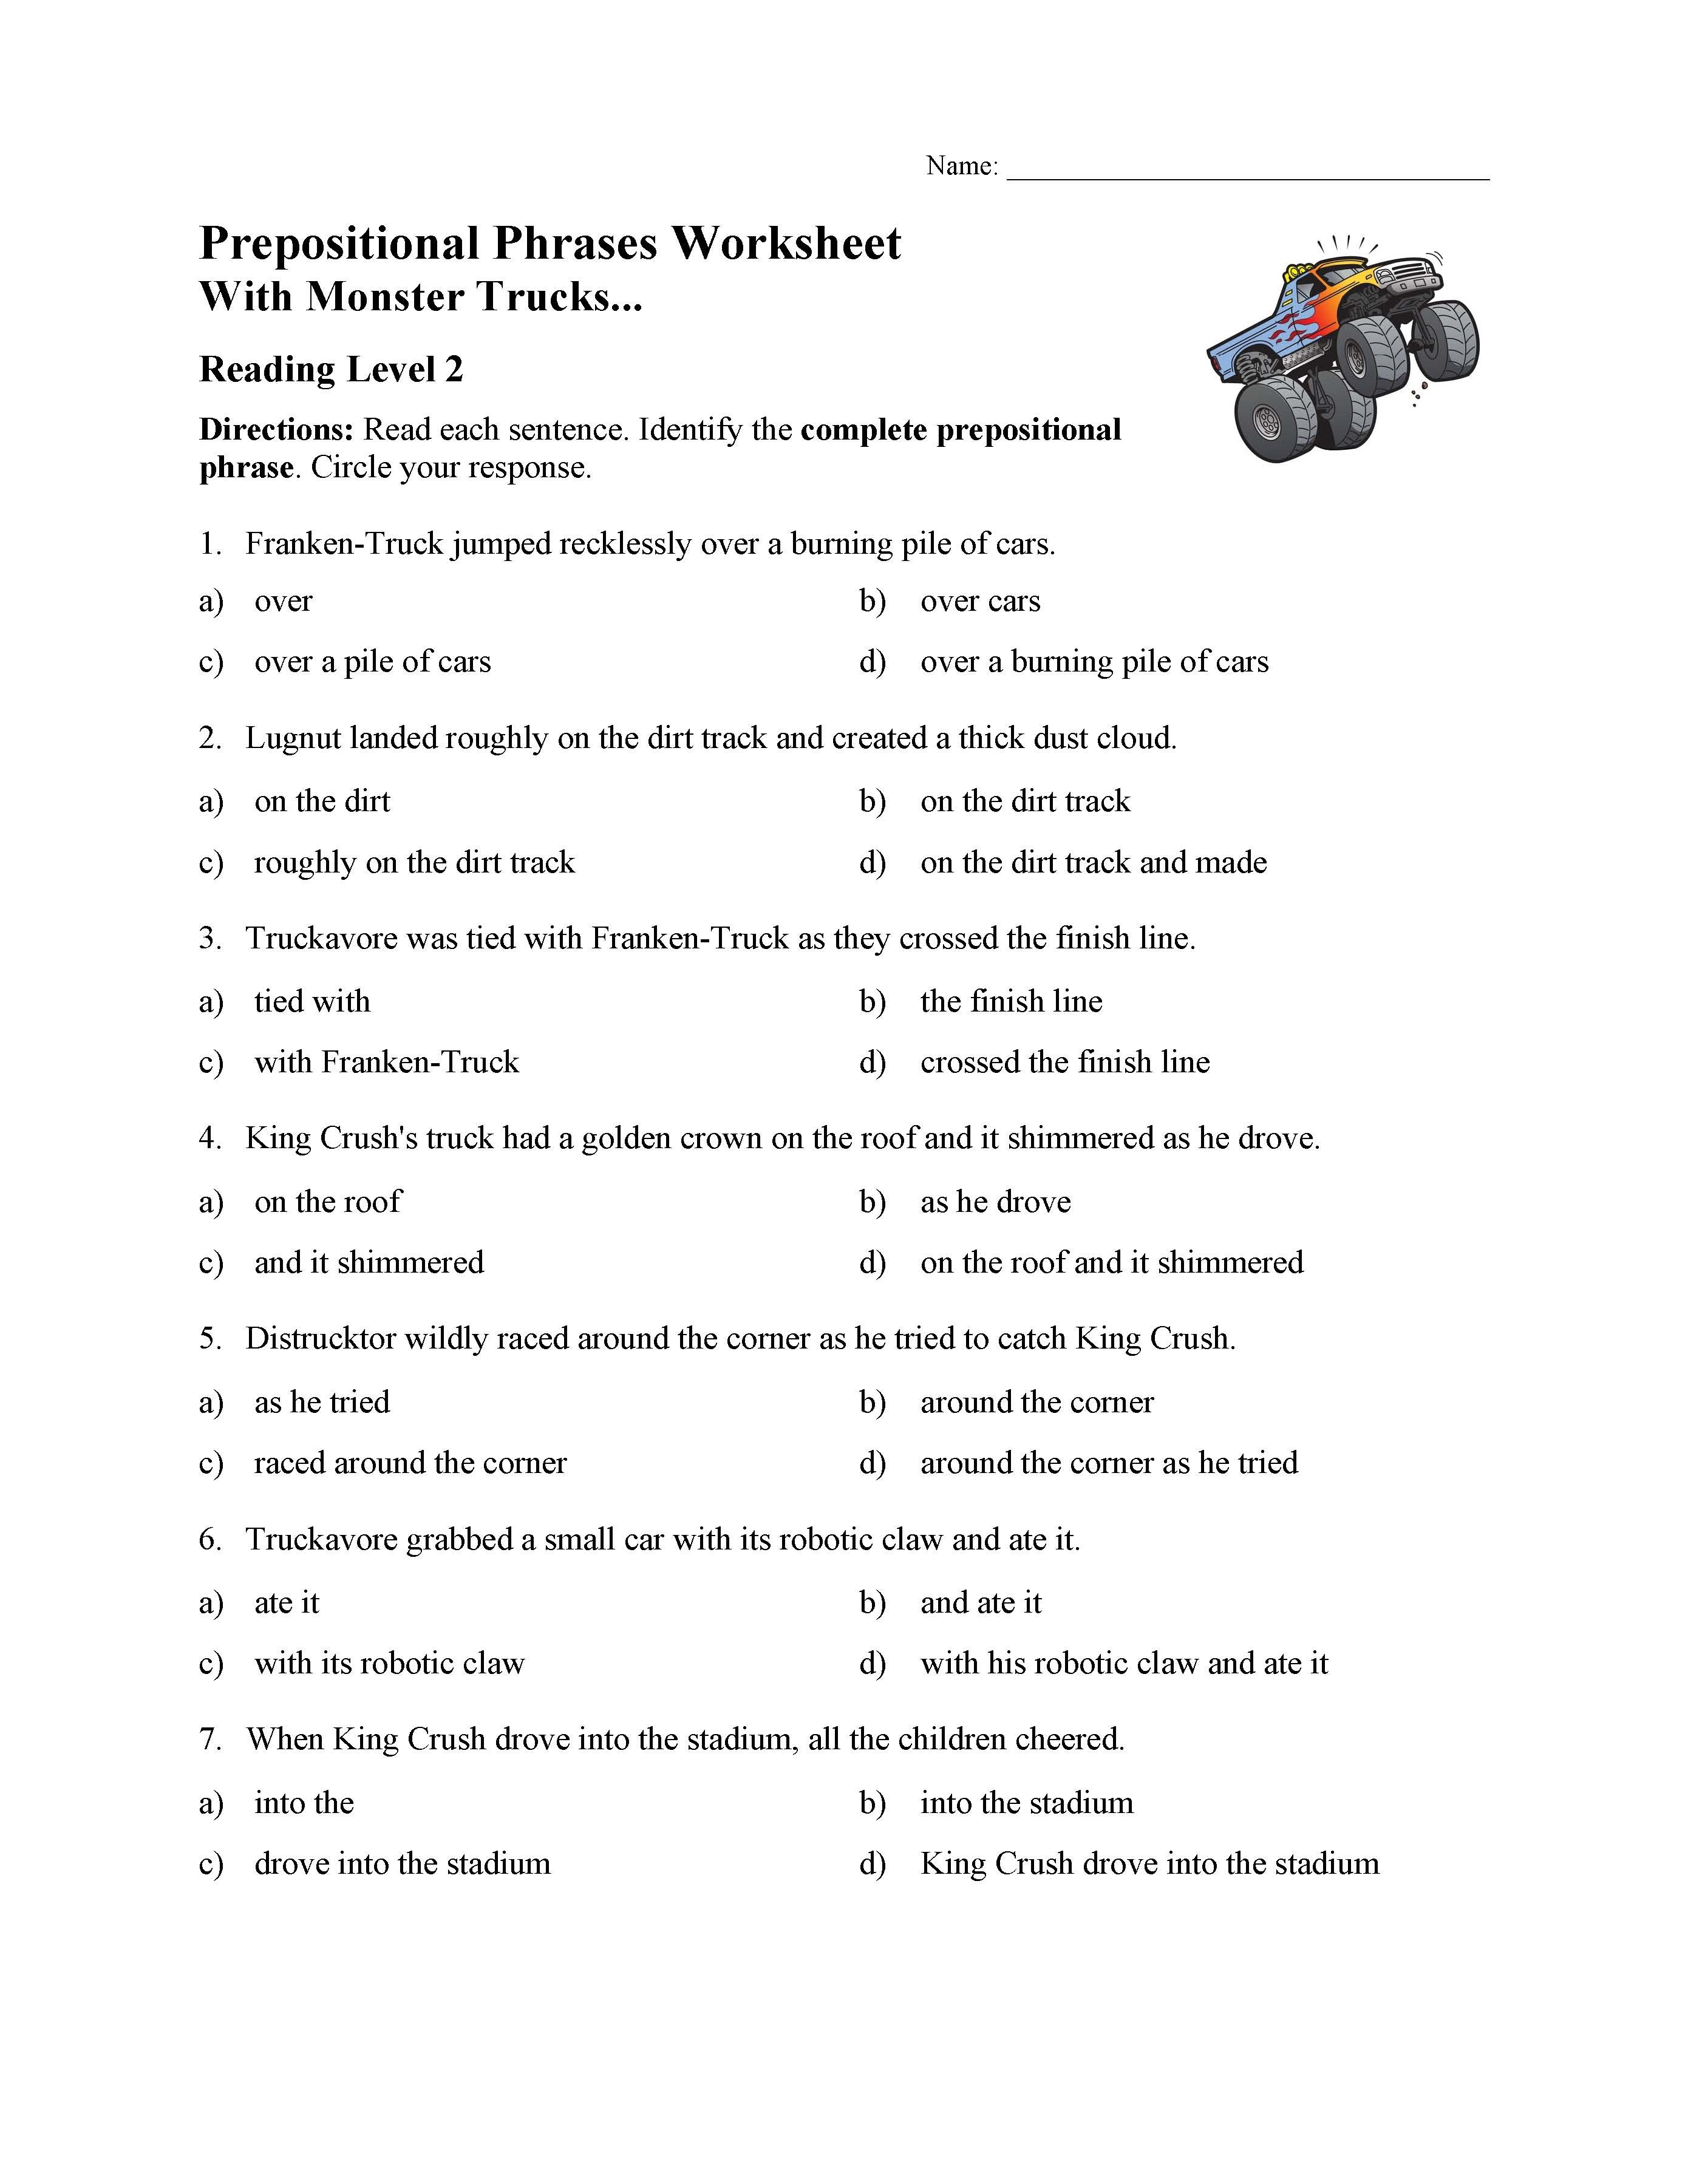 Prepositional Phrases Worksheet 6th Grade Prepositional Phrases Worksheet 1 Reading Level 2